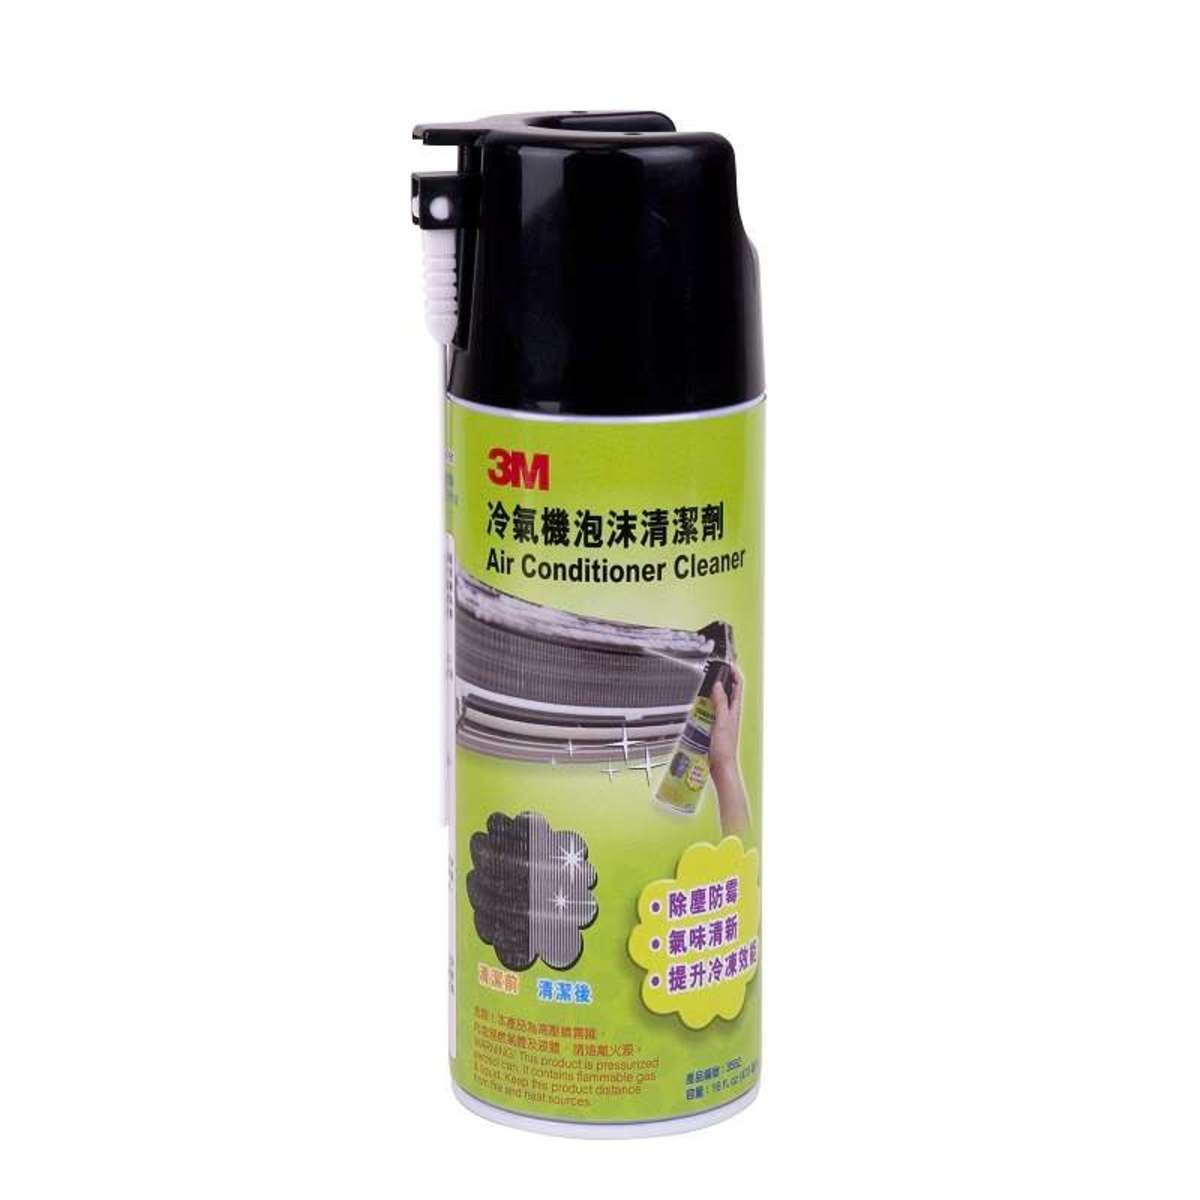 Air Conditioner Cleaner - #3582